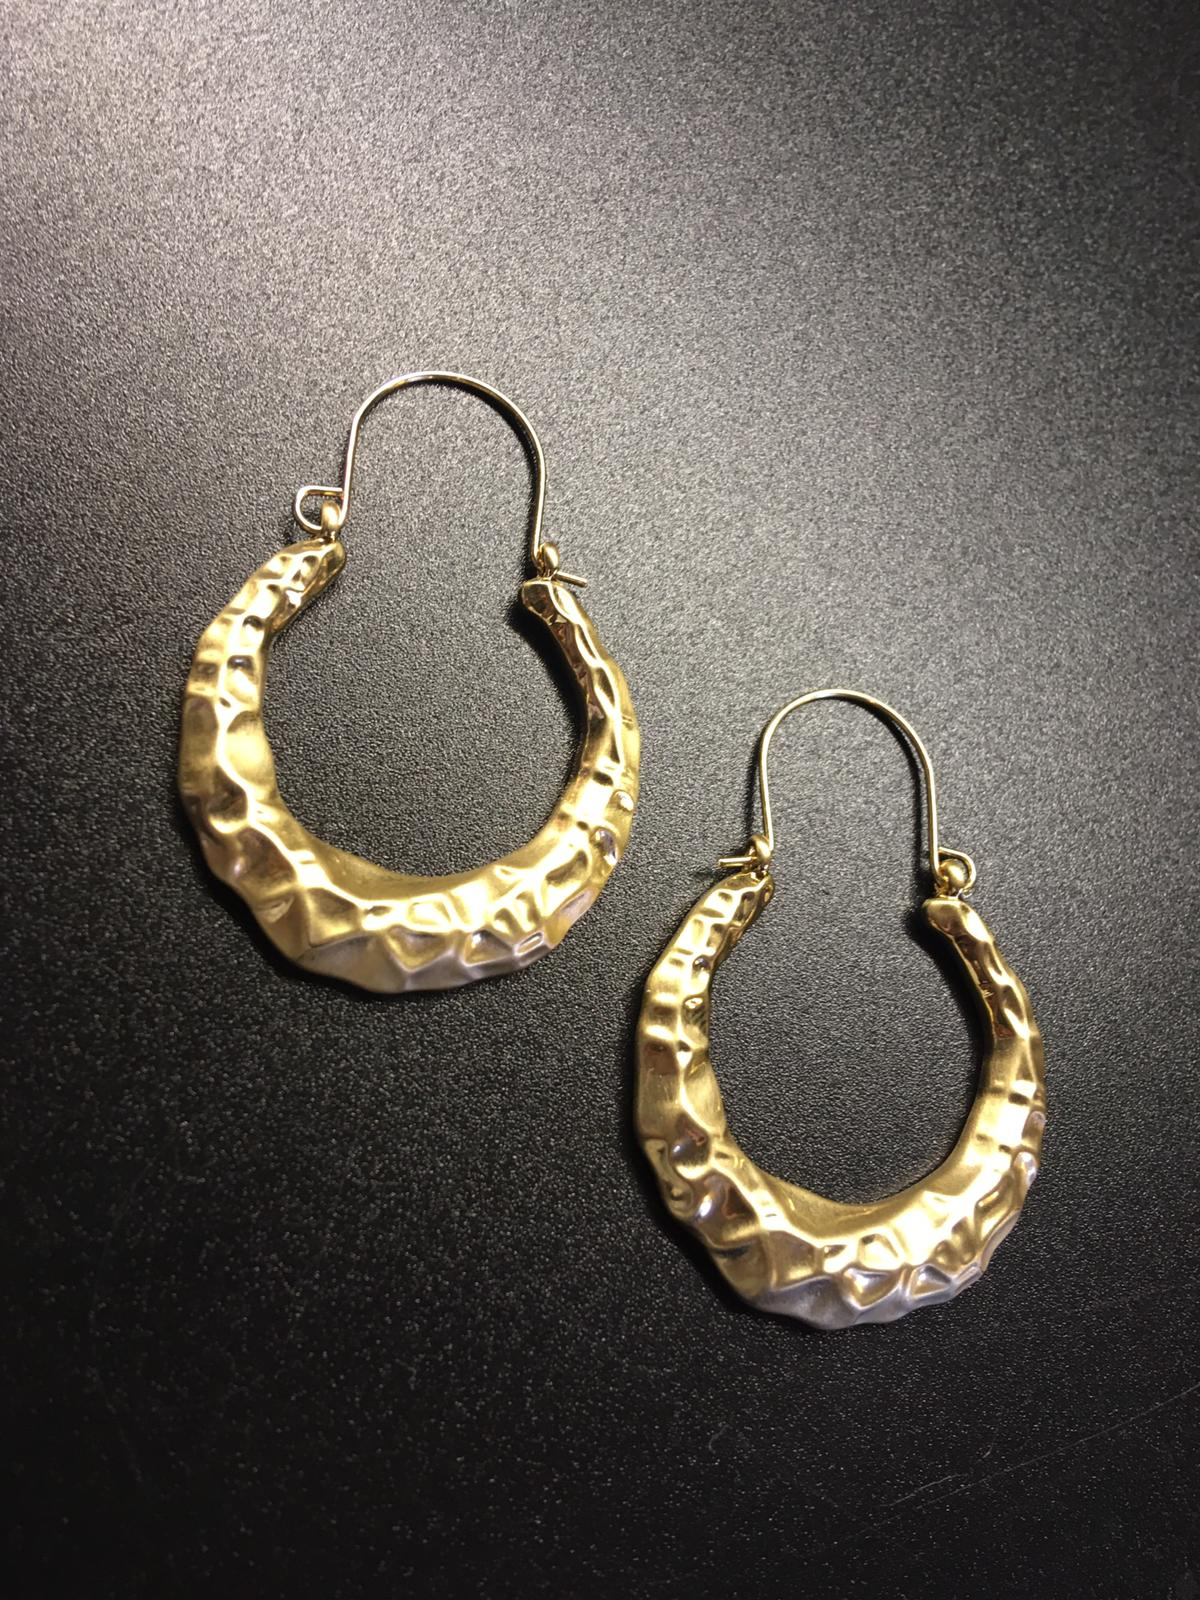 The Inca Hoops